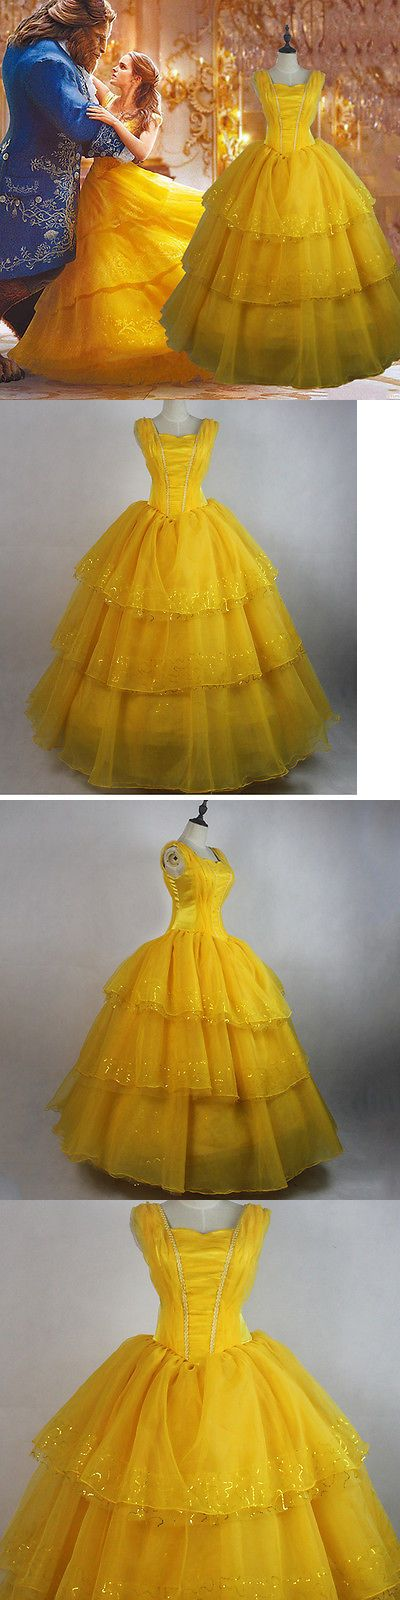 Halloween Costumes Women: Adult Beauty And The Beast Princess Belle Cosplay Costume Ball Gown Fancy Dress -> BUY IT NOW ONLY: $85.99 on eBay!